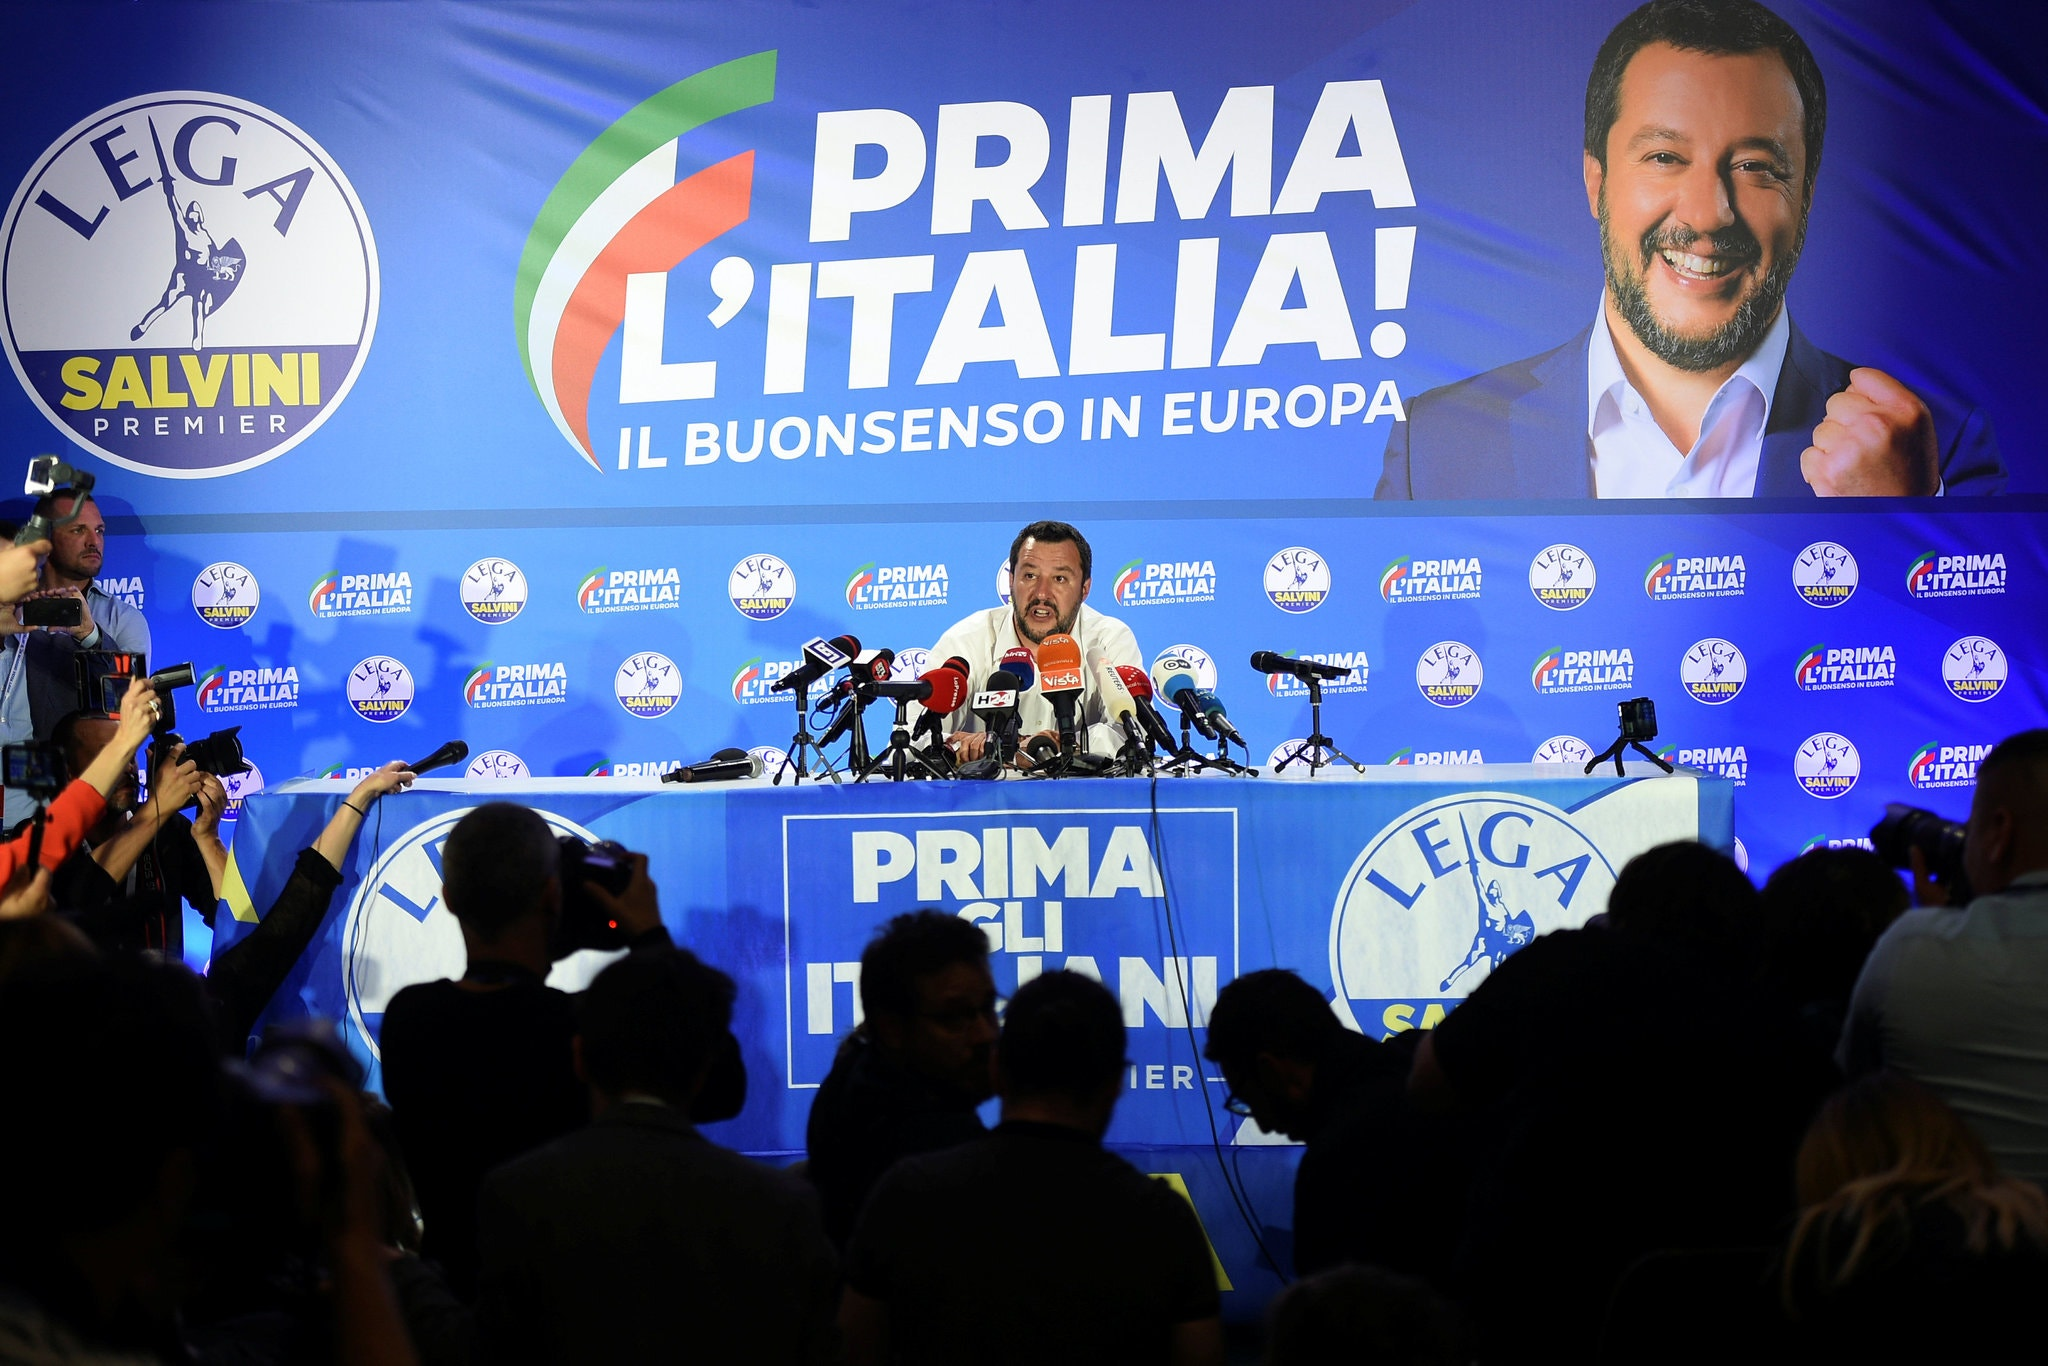 Matteo Salvini, Italy's interior minister and leader of the anti-migrant League Party, in Milan, Italy, on Monday. Credit Guglielmo Mangiapane/Reuters